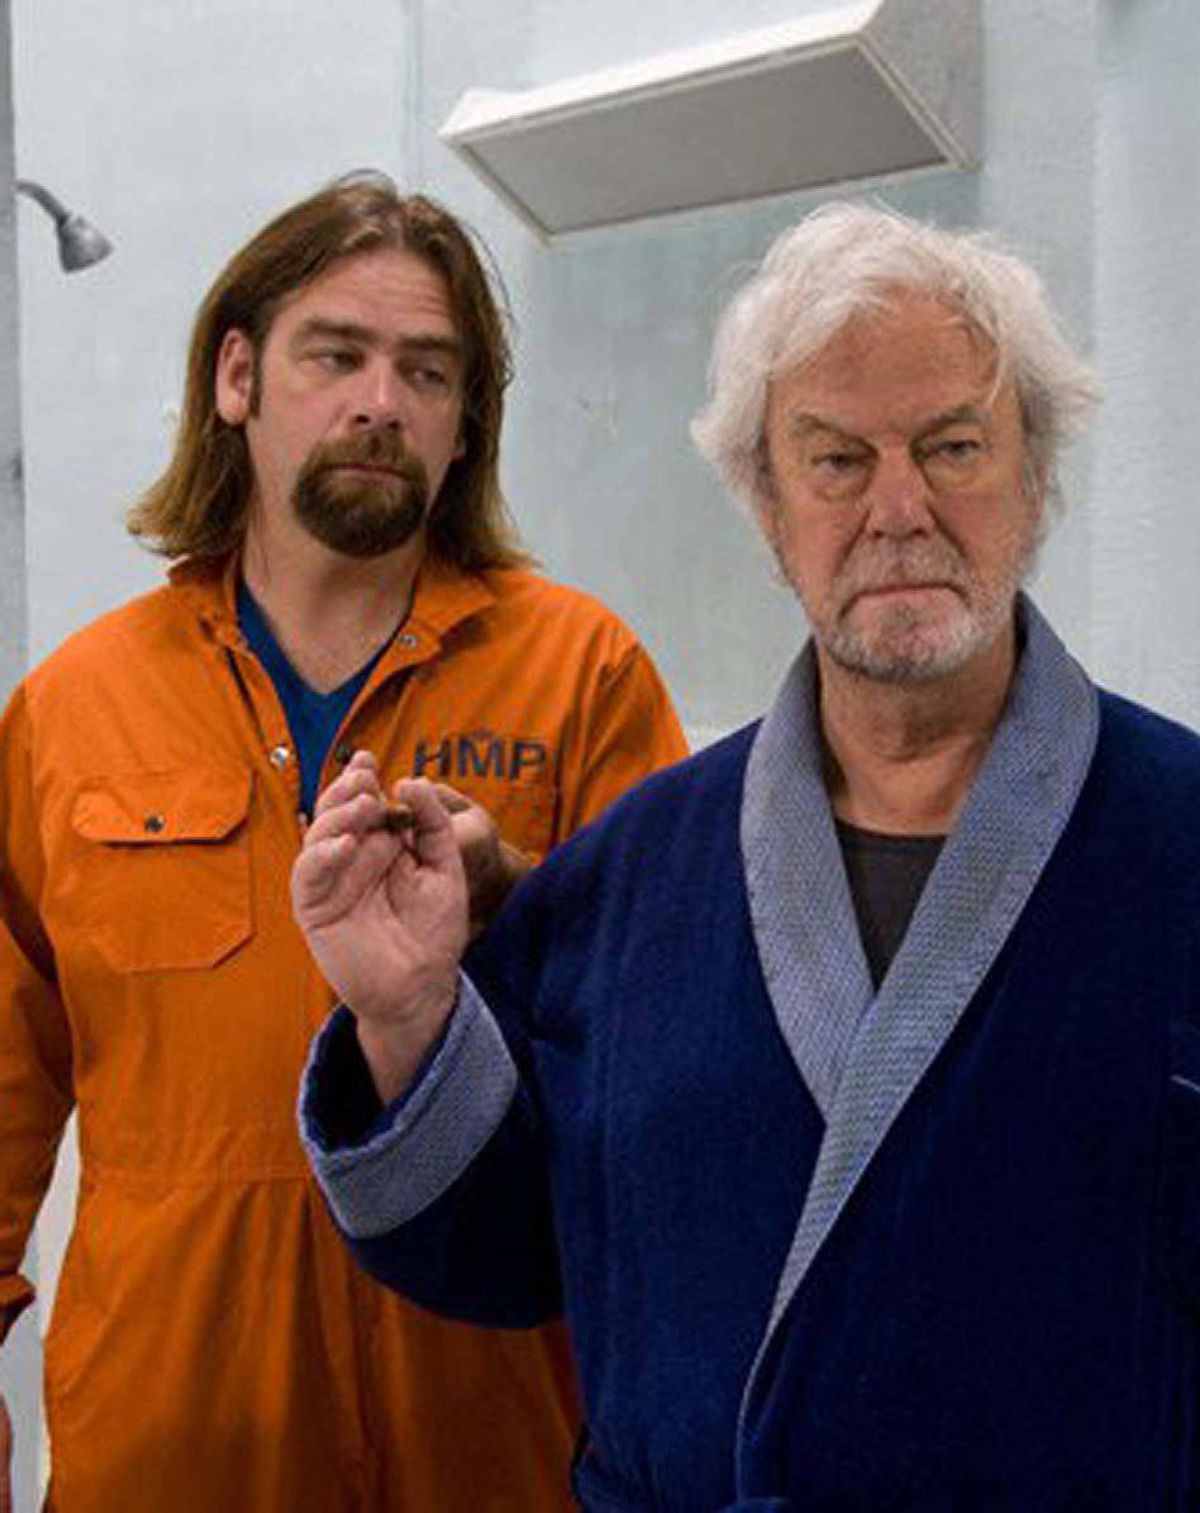 DRAMA Republic of Doyle CBC, 9 p.m. ET/PT Turns out Canadian viewers will watch a homegrown program – if it's really good. This unabashed paean to Newfoundland still pulls in a million-plus viewers weekly in its third season. Give full credit to Bell Island-born Allan Hawco, who serves as executive producer and head writer and plays the titular role of Jake Doyle, a hard-luck gumshoe in scenic St. John's. Regular viewers will want to take note of tonight's new episode, which marks the return of that proud Newfoundland native Gordon Pinsent to his role of the roguish con man Maurice Becker, who suddenly pops up and starts spinning his fanciful fabrications.